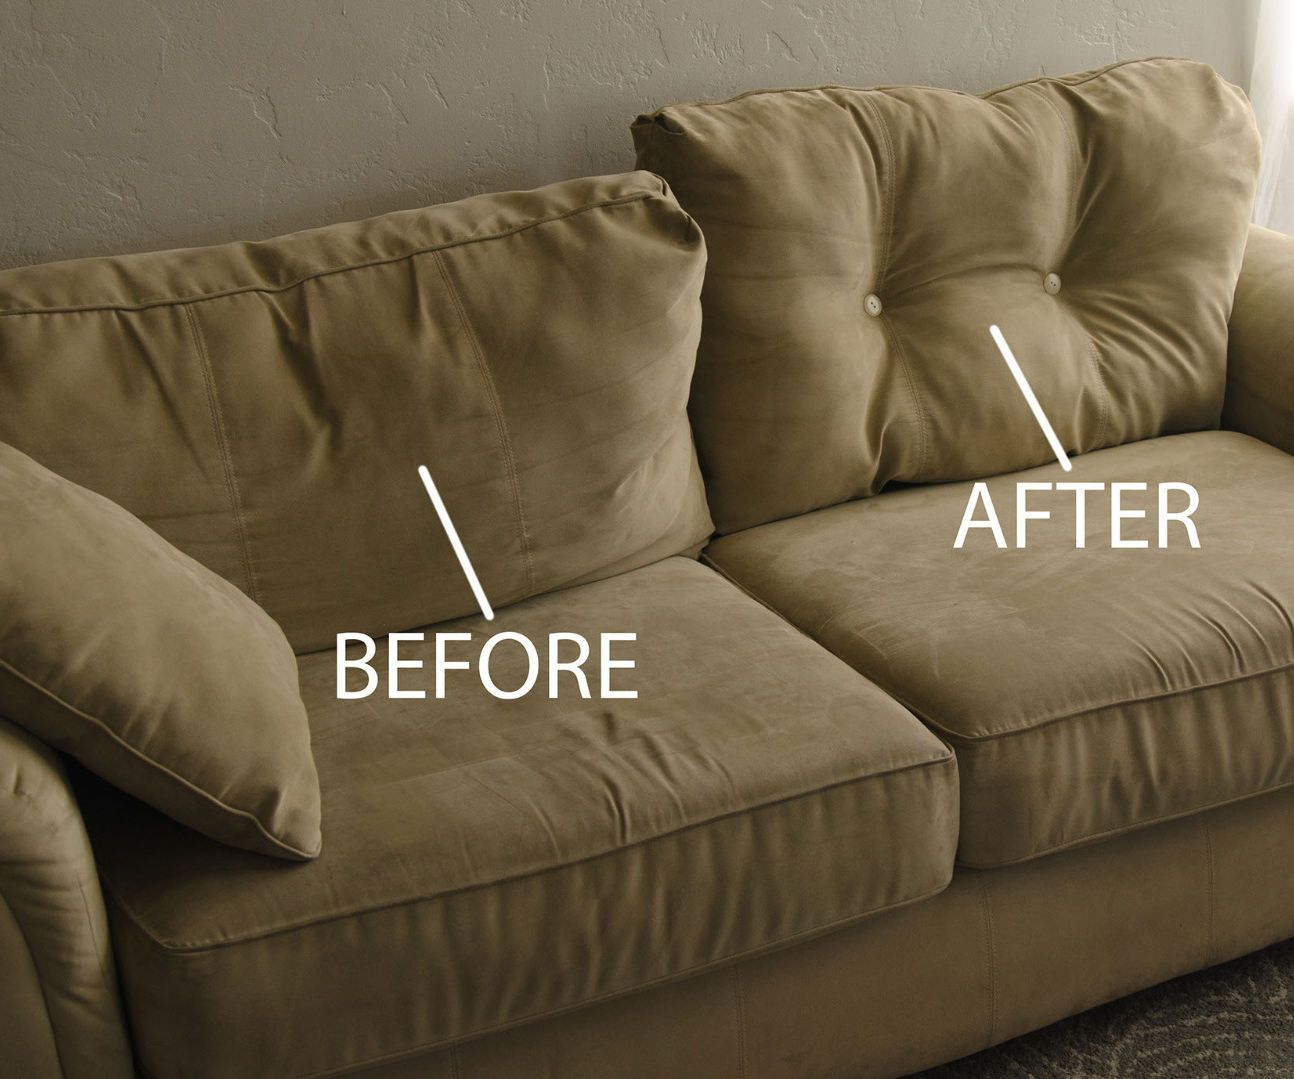 Best Kitchen Gallery: 1 Fix For Saggy Couch Cushions Upholstery Living Rooms And Diy of Couch Cushions  on rachelxblog.com